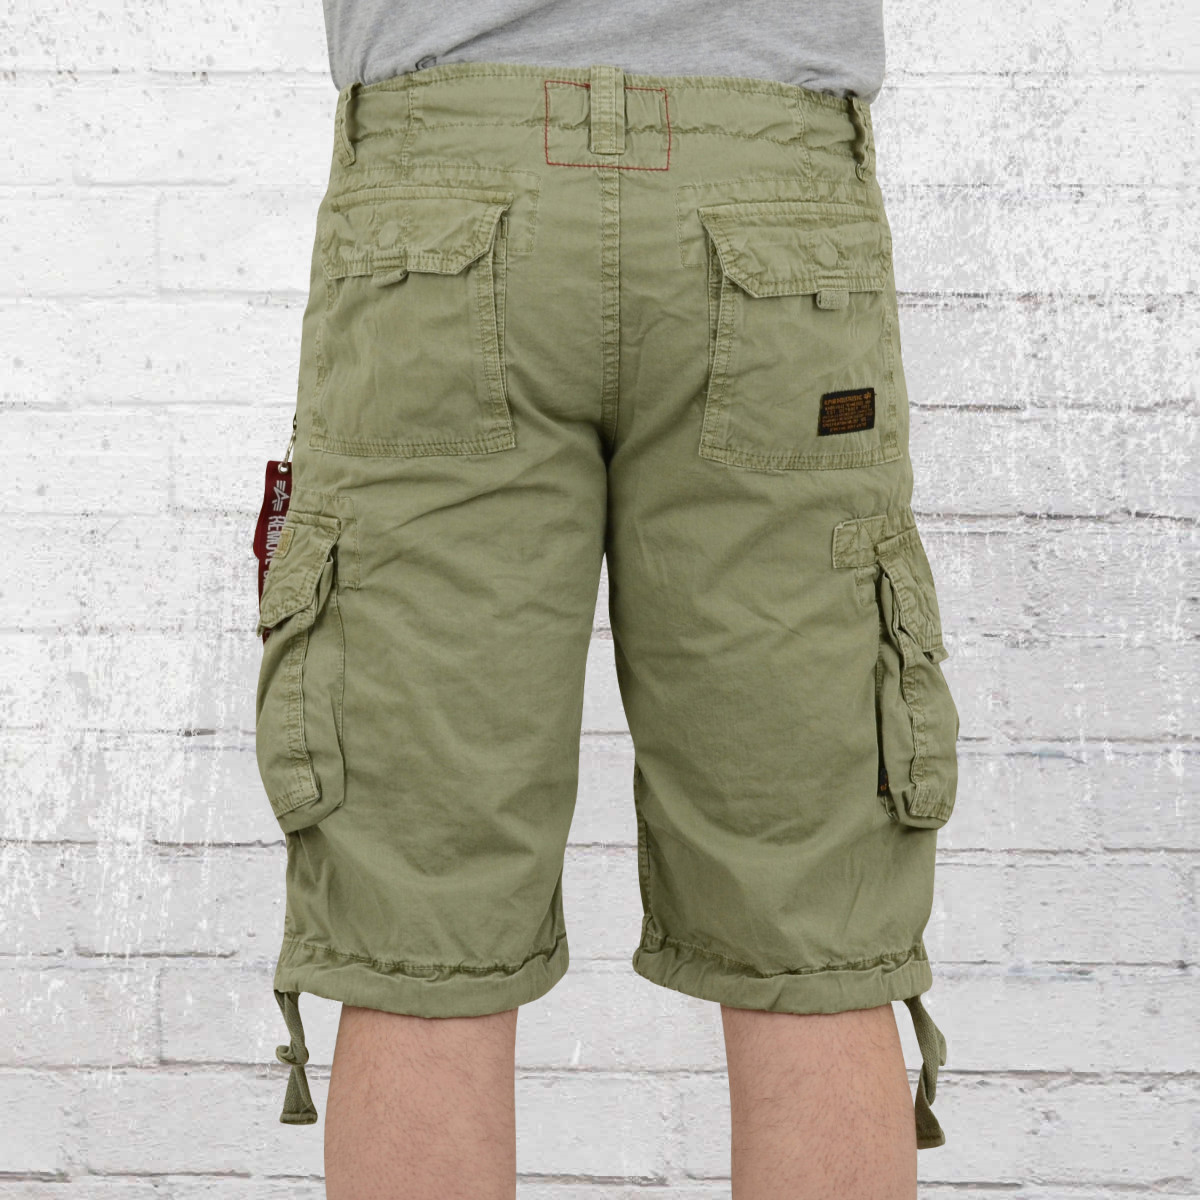 jetzt bestellen alpha industries herren cargo short jet light olive gr n krasse. Black Bedroom Furniture Sets. Home Design Ideas